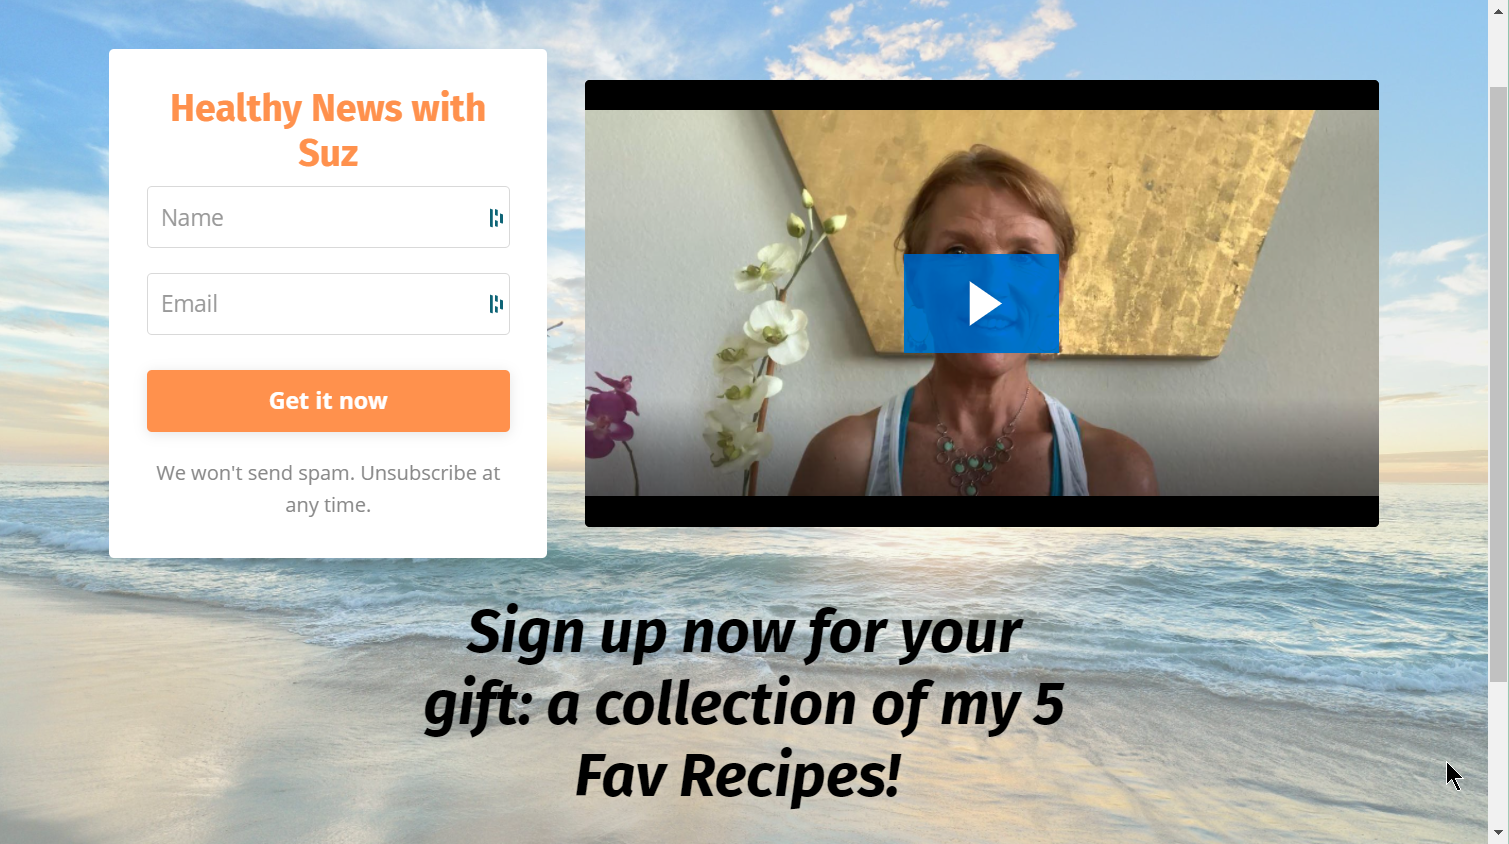 Screenshot of Suzanne Jeffreys' website with a photo of the ocean and a paused video of her